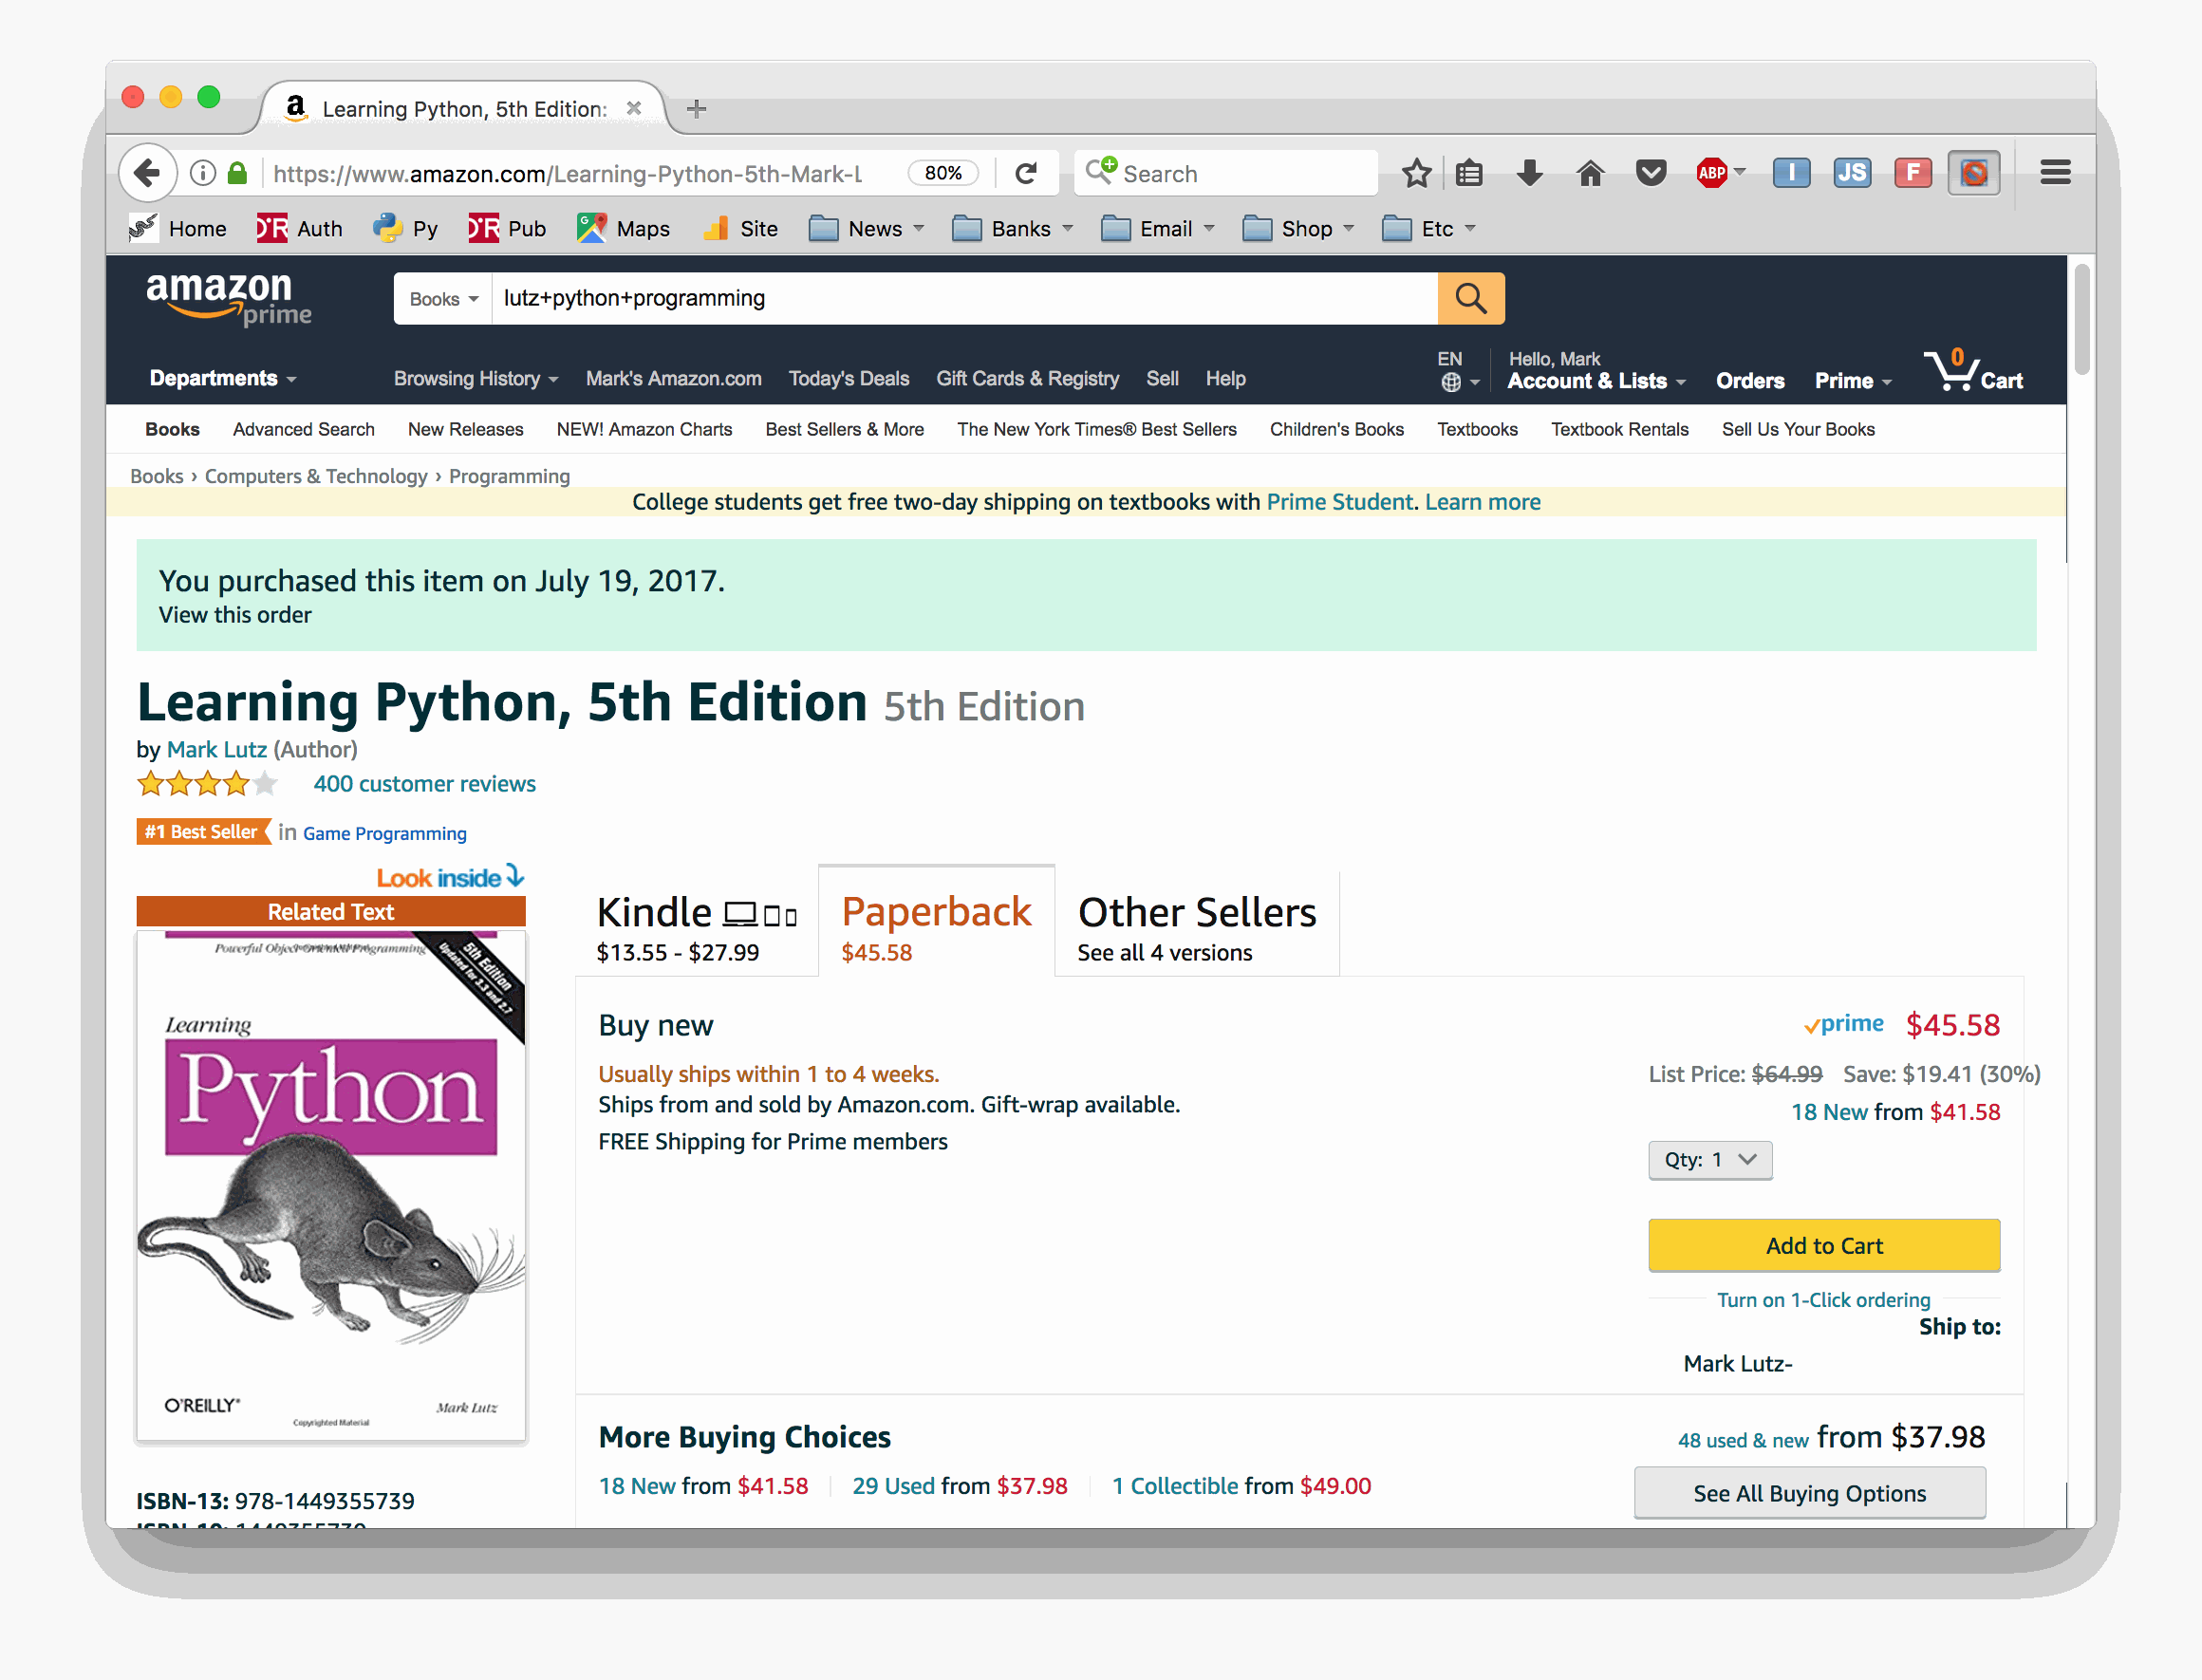 Teaching python by mark lutz entire month of november at a time when demand was surging another of my books fared even worse in this period being unavailable in print for over two fandeluxe Gallery